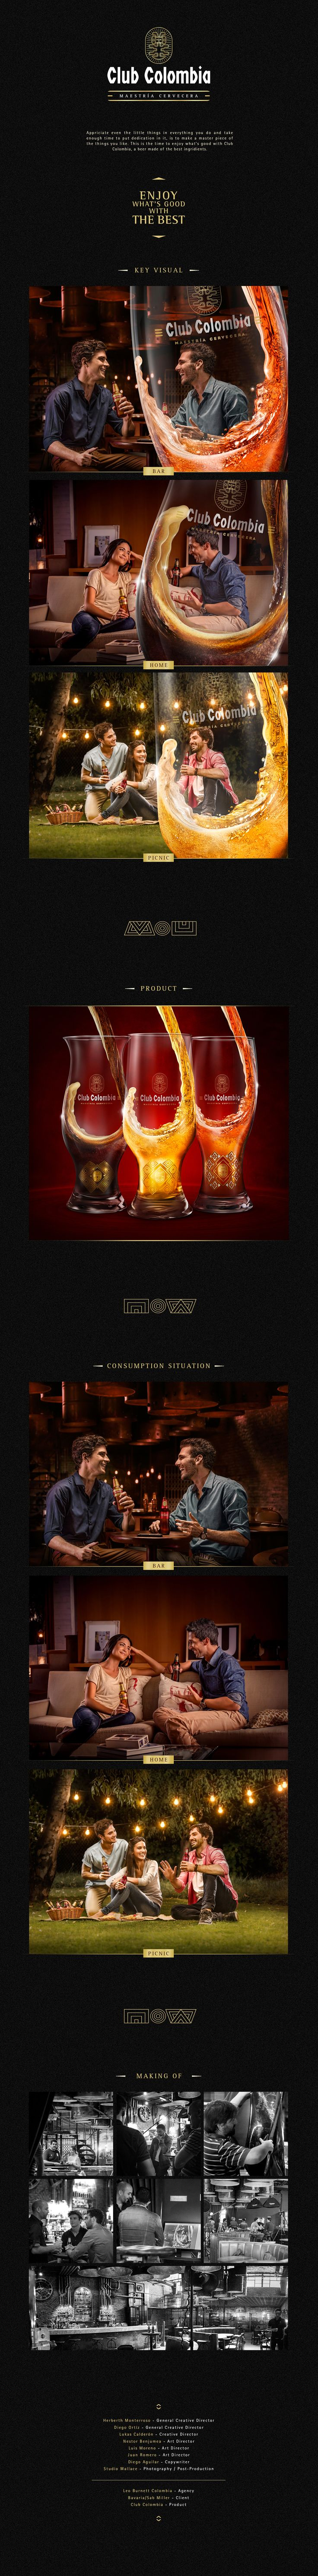 Club Colombia- Enjoy With The Best on Behance